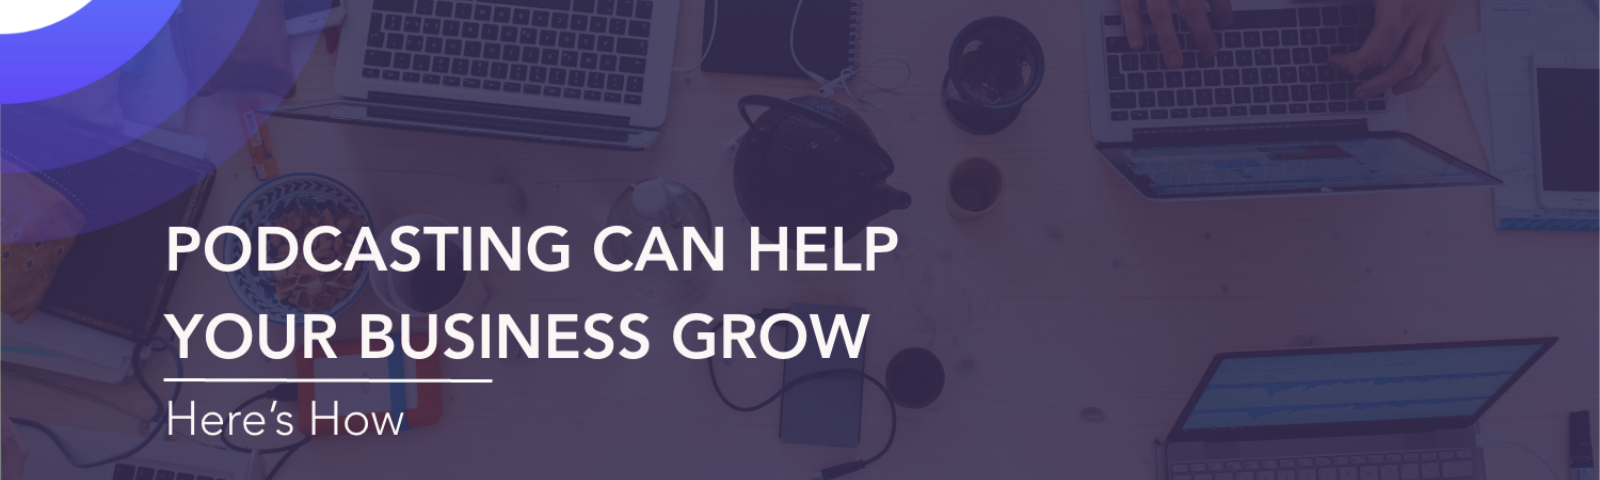 grow business podcasting